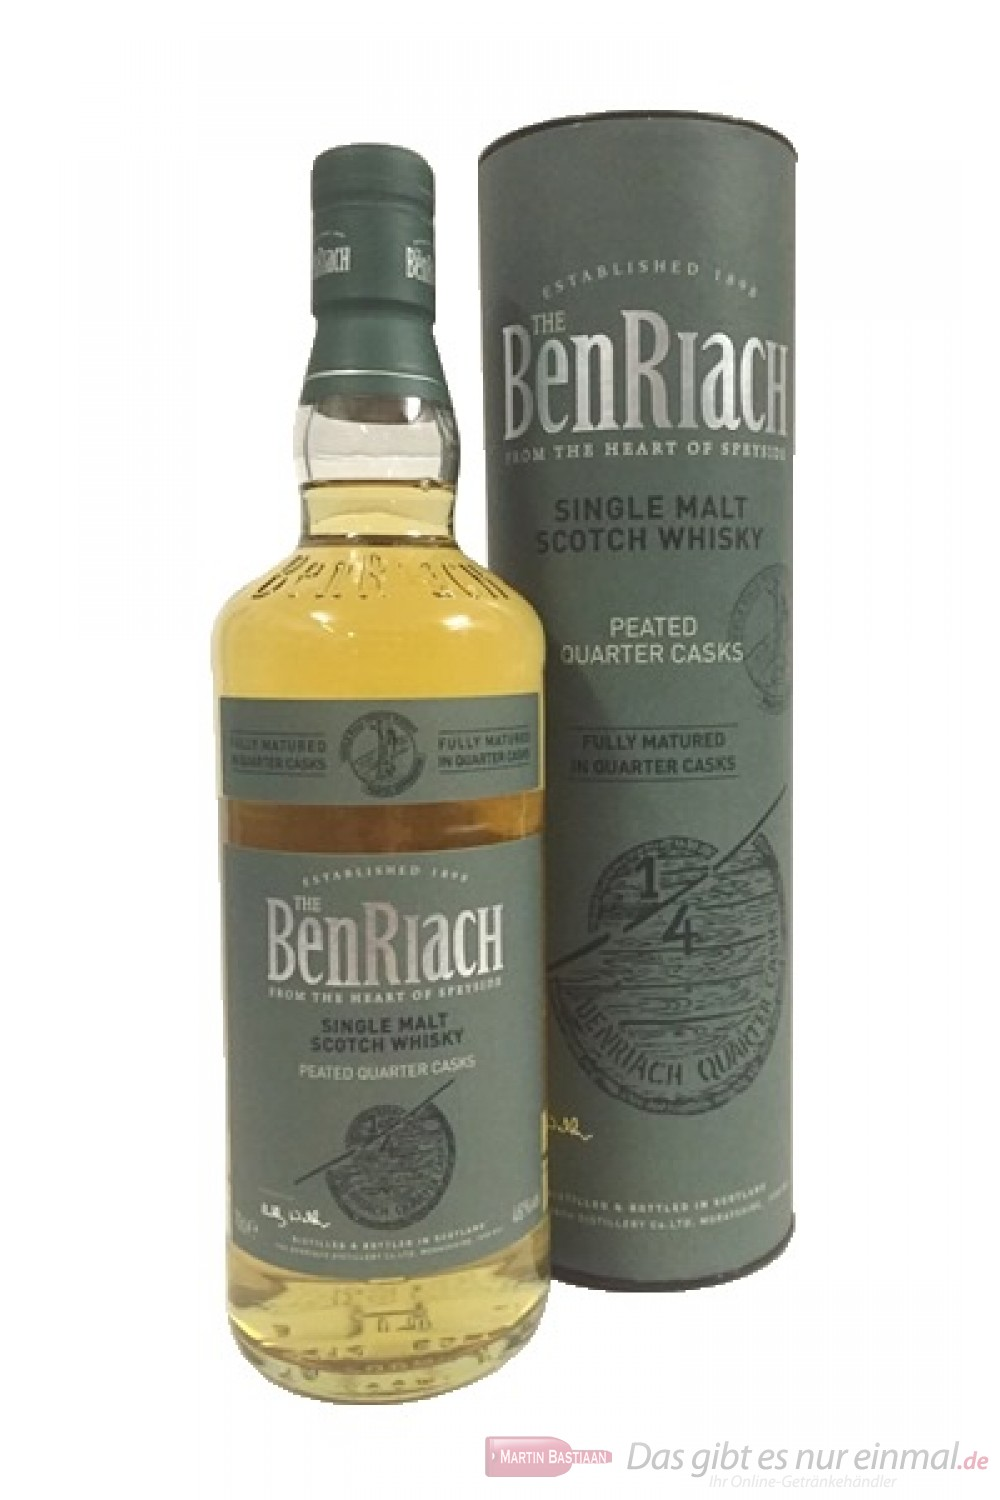 BenRiach Peated Cuarter Cask